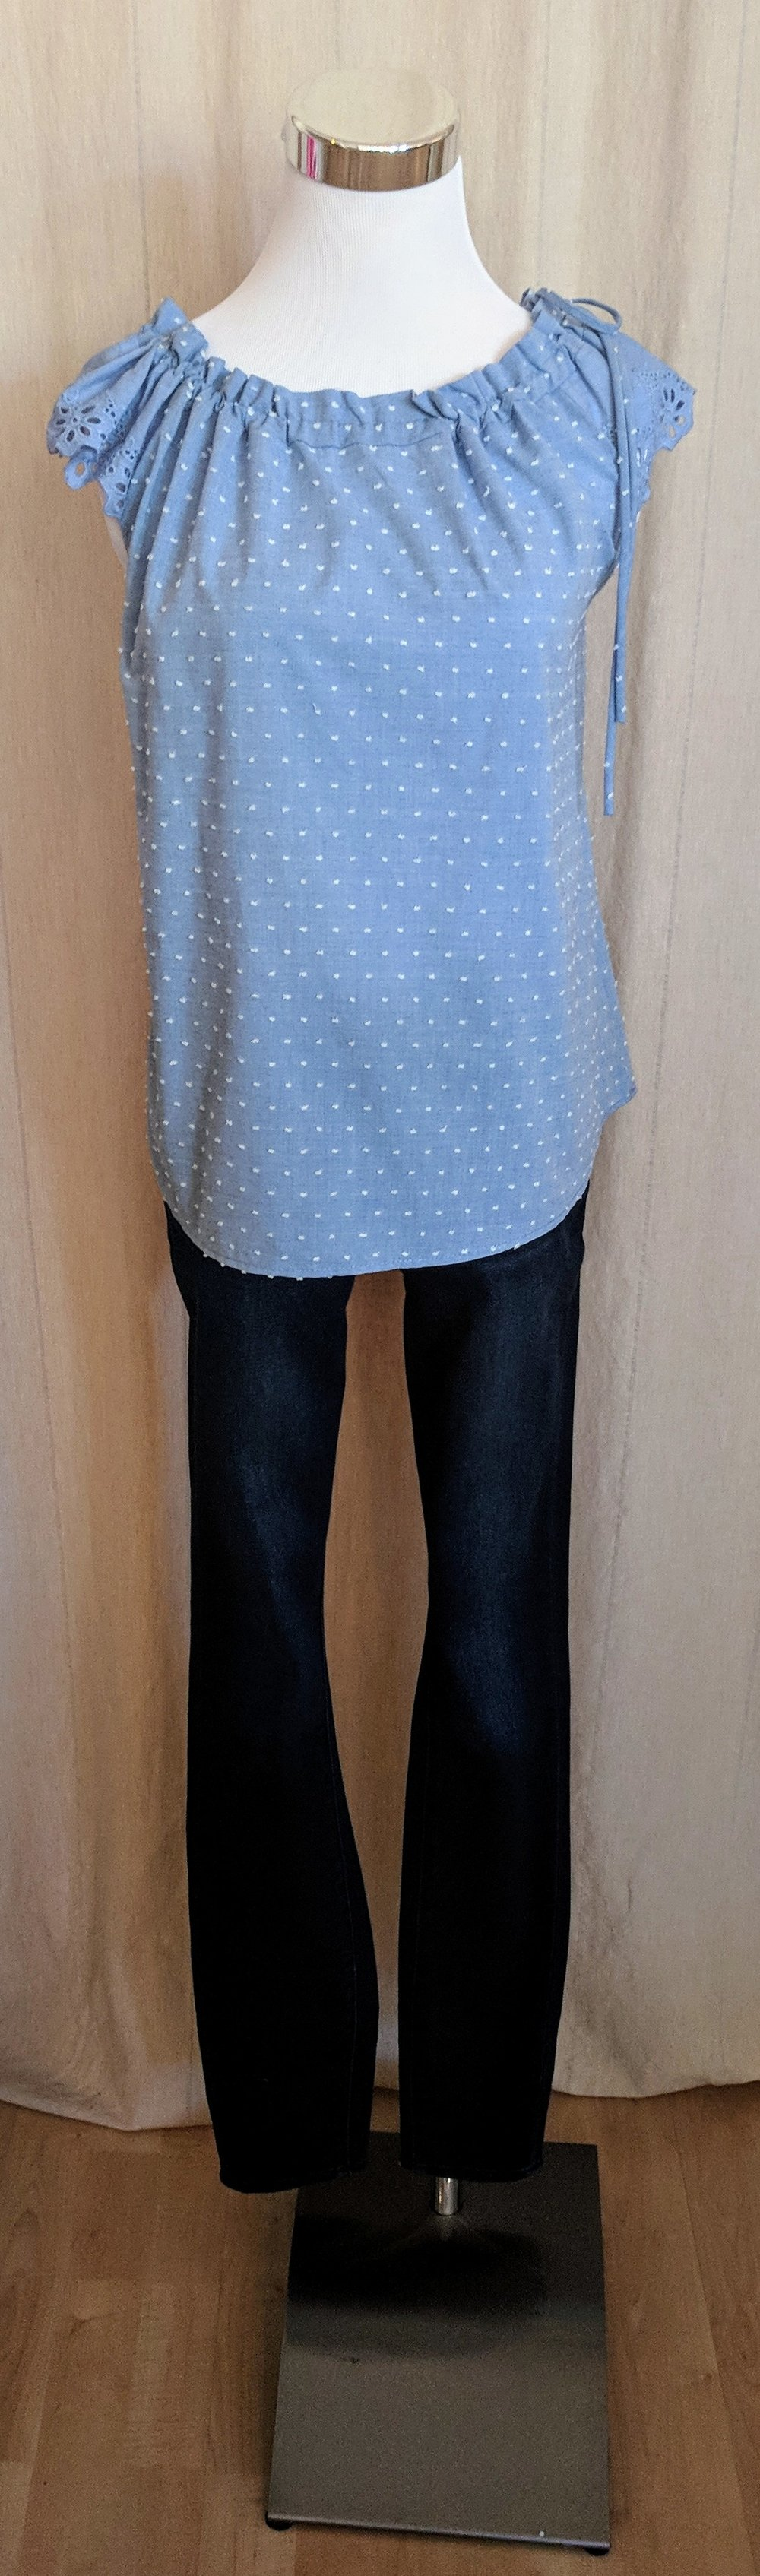 Light blue sleeveless top with tie detail on collar.